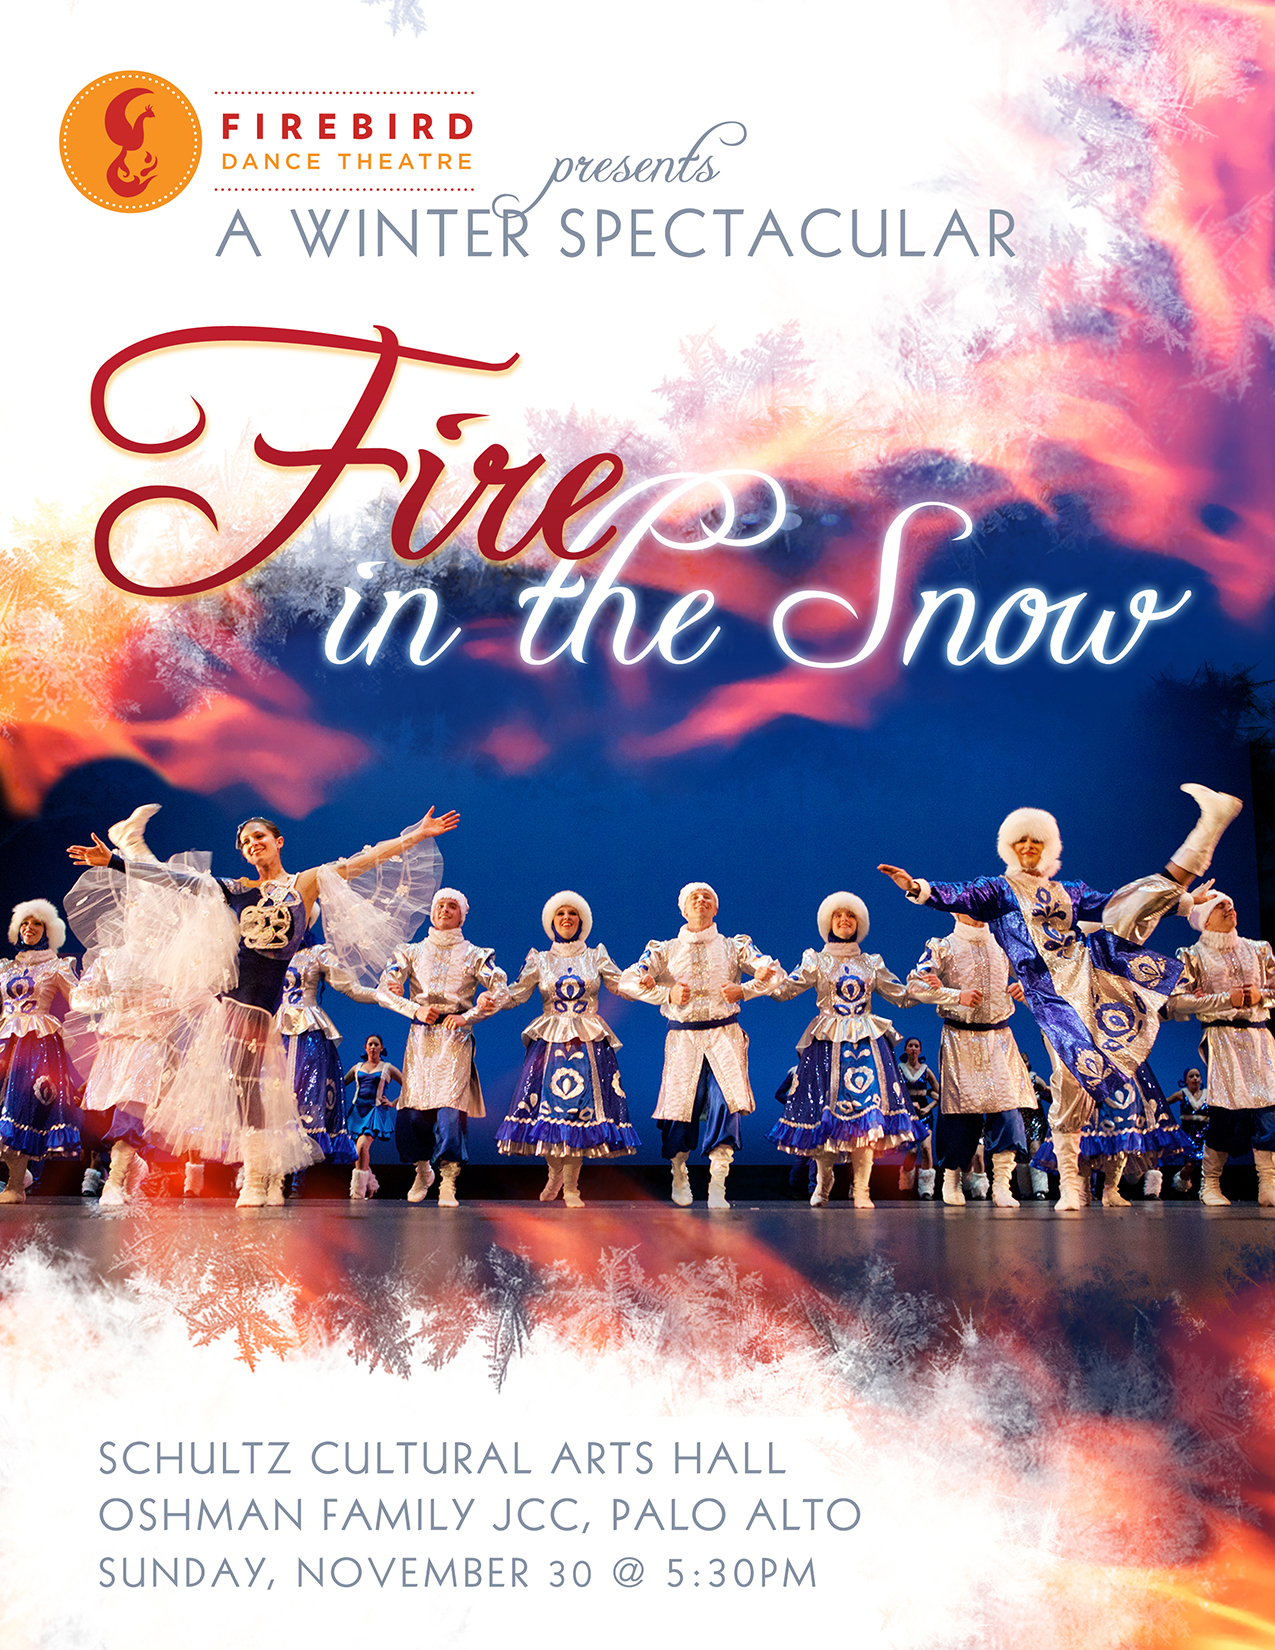 Fire in the Snow 2014 Performance Photo Gallery